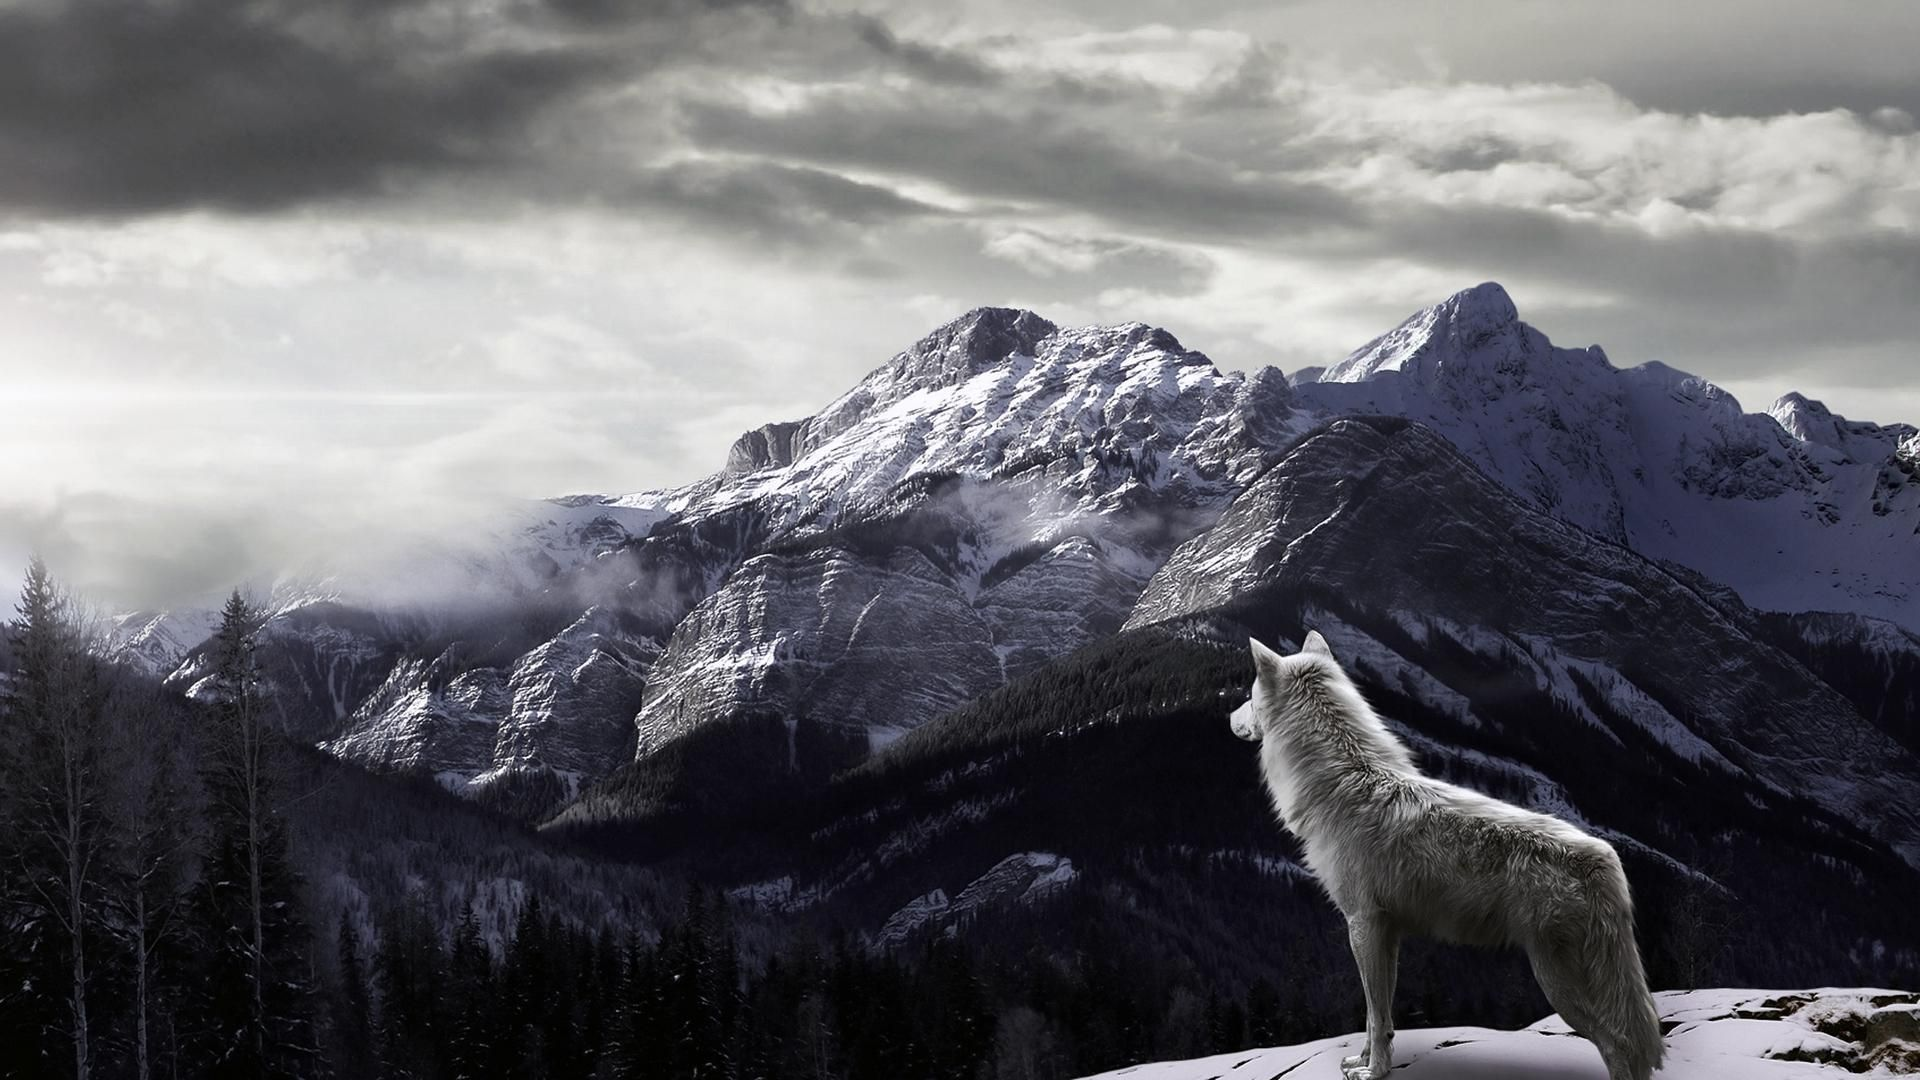 Must see Gray Wolf Wallpaper Mountains - 1938f439d323e233bcbdb45aaa50a4e1  You Should Have_20169.jpg